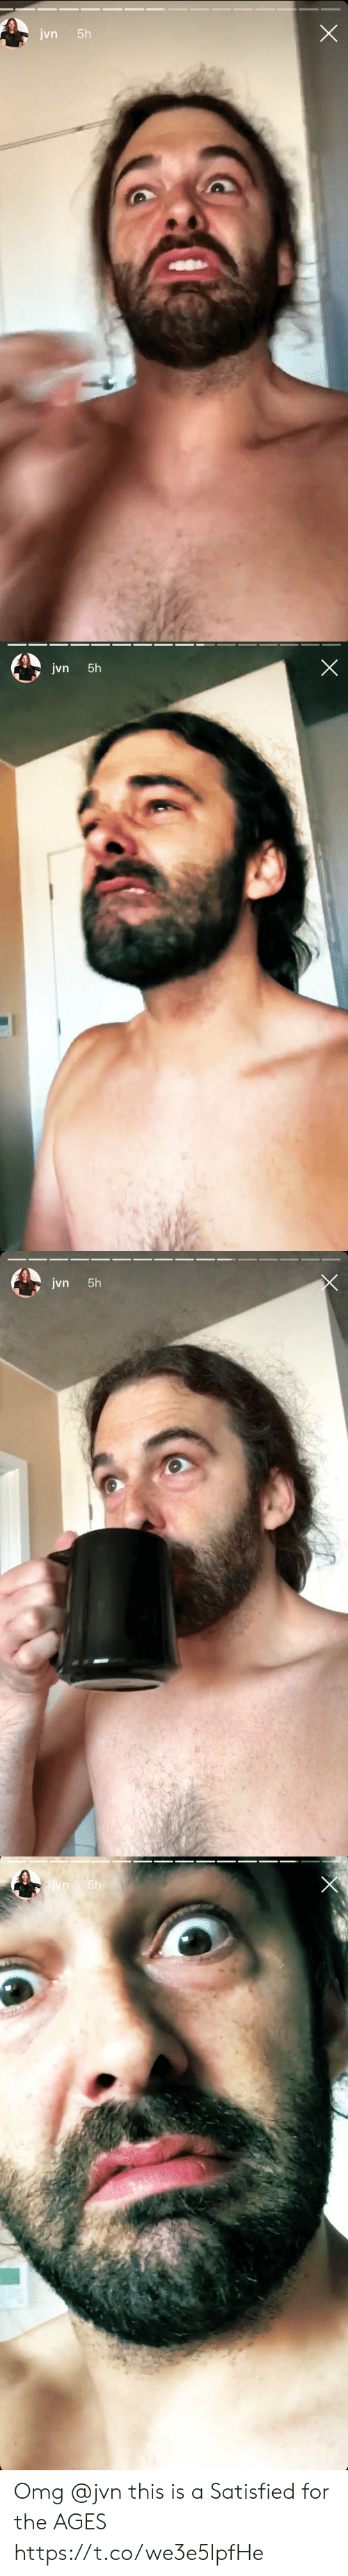 Memes, Omg, and 🤖: jvn  5h   jvn  5h   jvn 5h   ivn 5h Omg @jvn this is a Satisfied for the AGES https://t.co/we3e5IpfHe